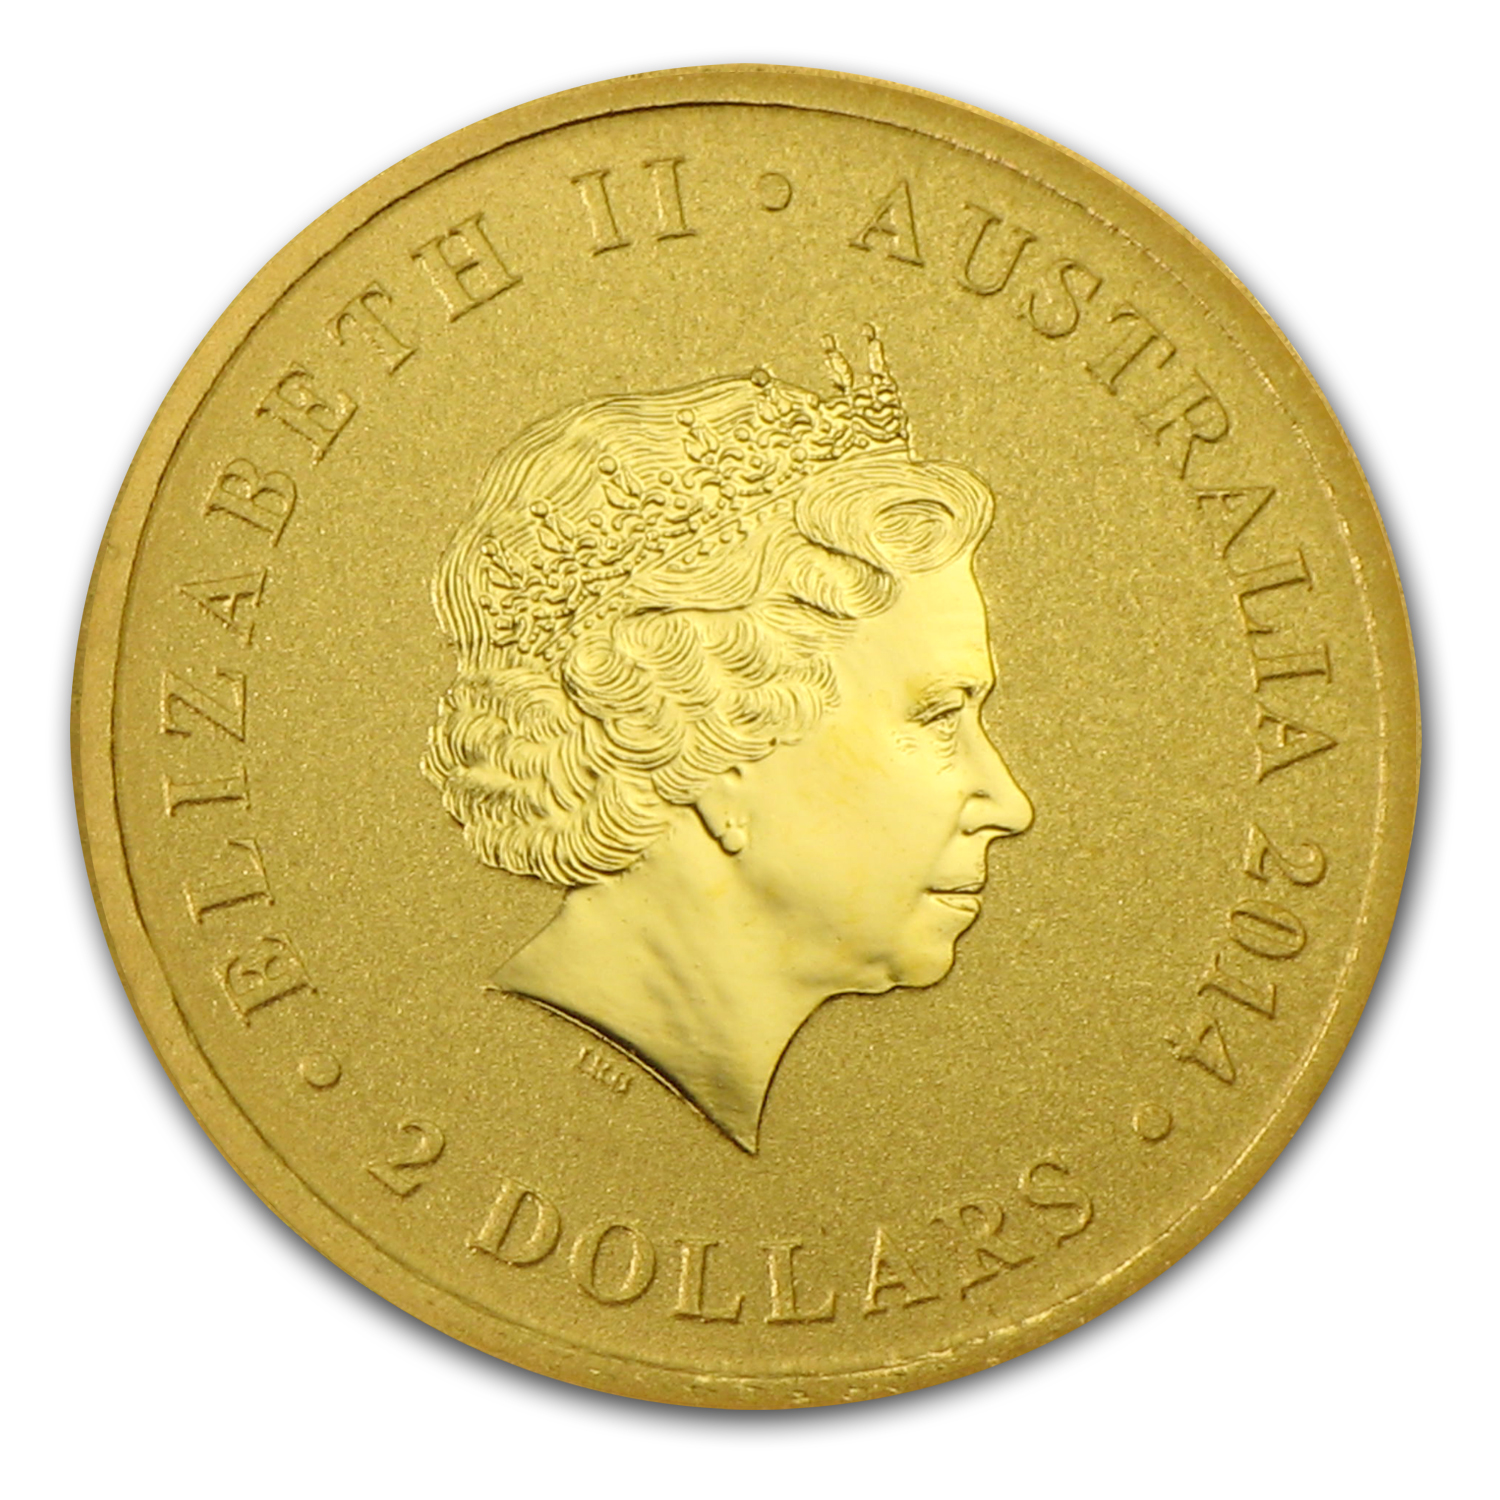 2014 Australia 1 2 Gram Gold Kangaroo Mini Roo Bu All